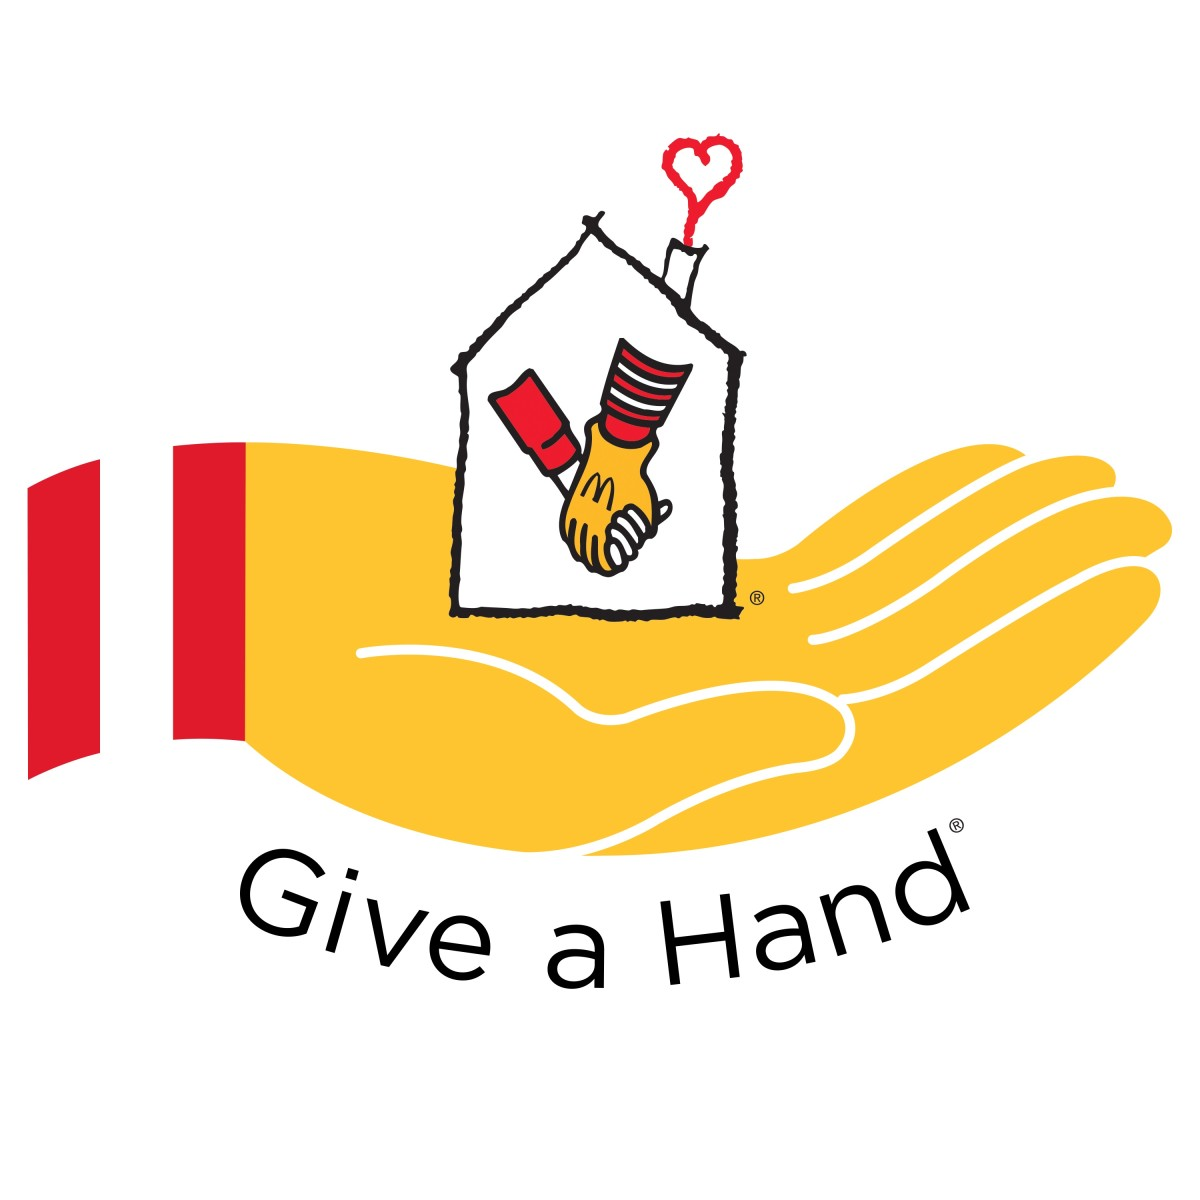 5 Reasons Why Ronald Mcdonald House Charities Should Be on Your Donation List